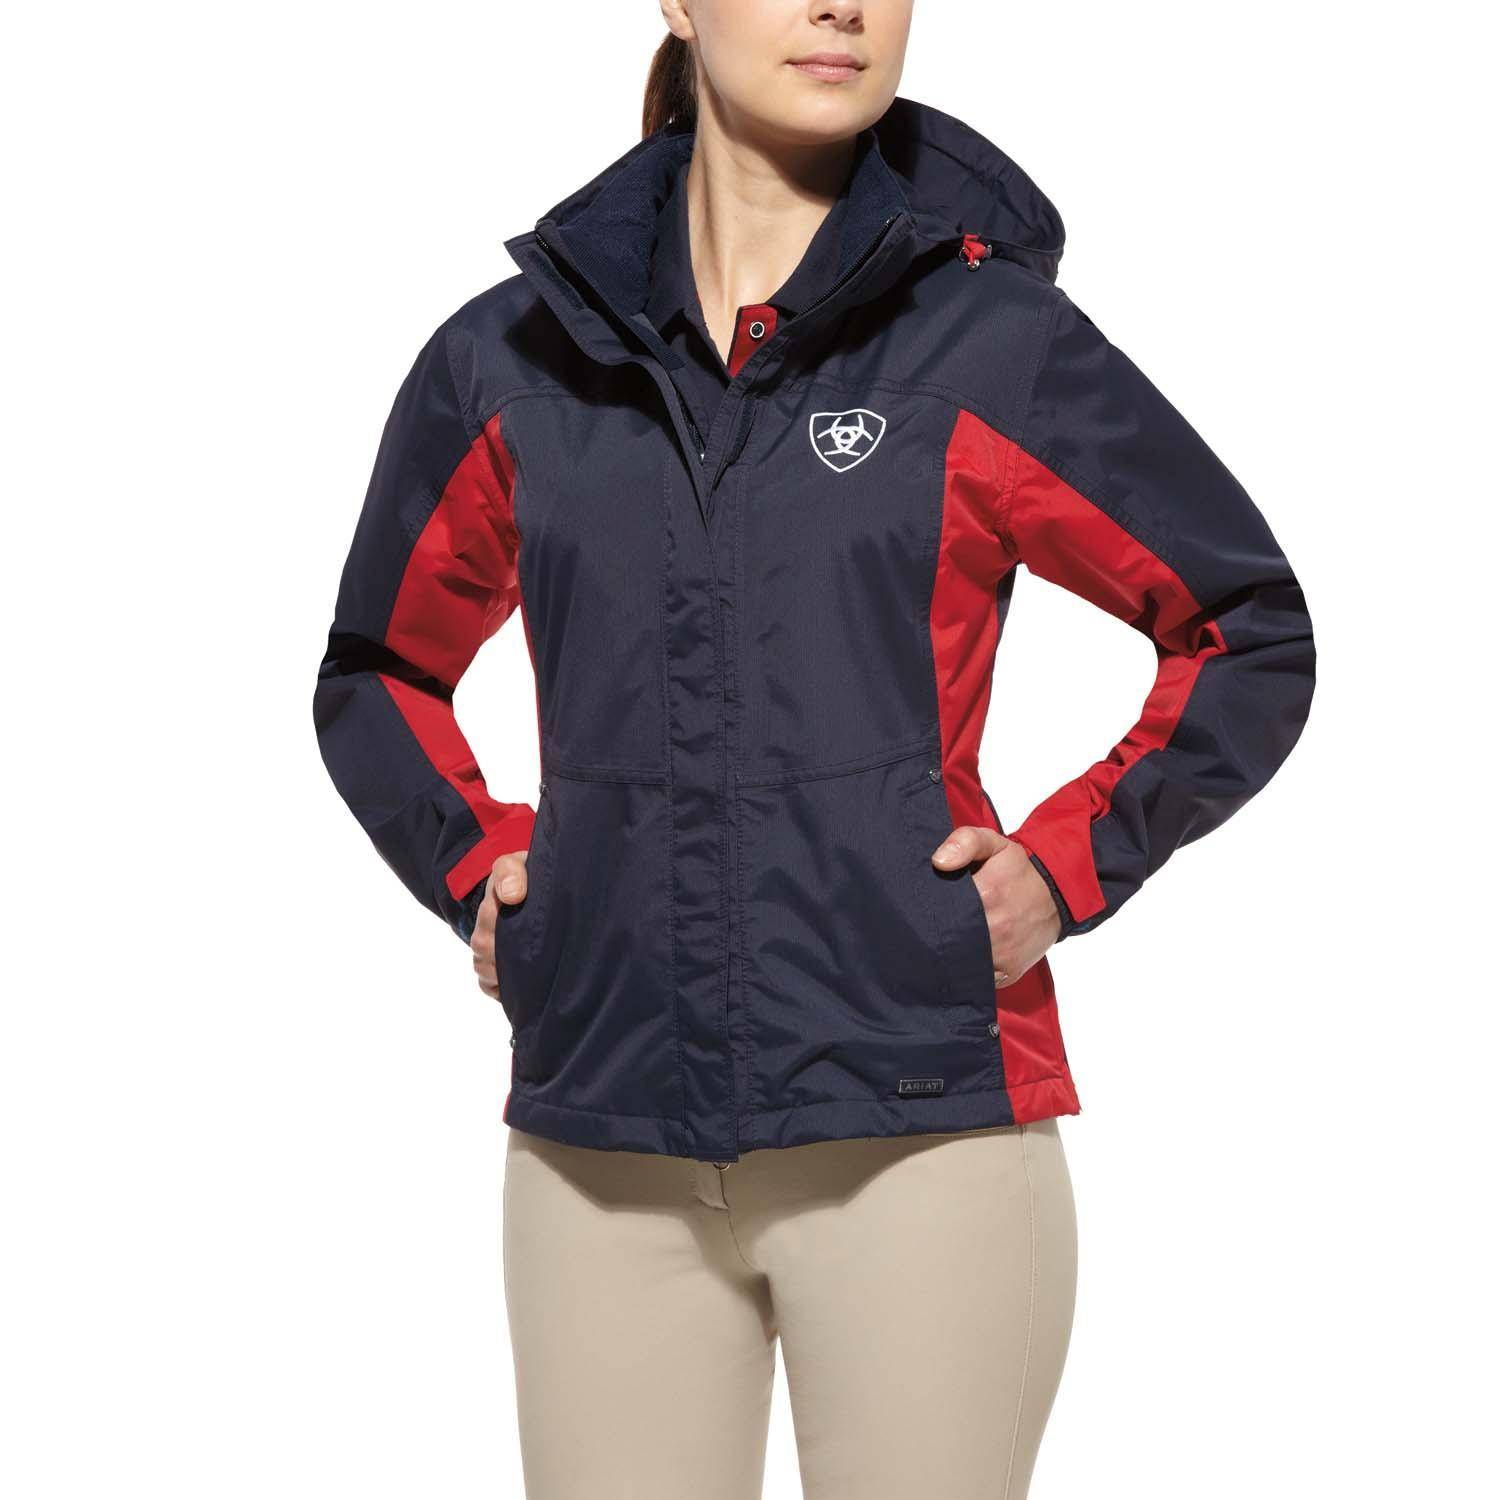 Ariat Women's Team Waterproof Jacket